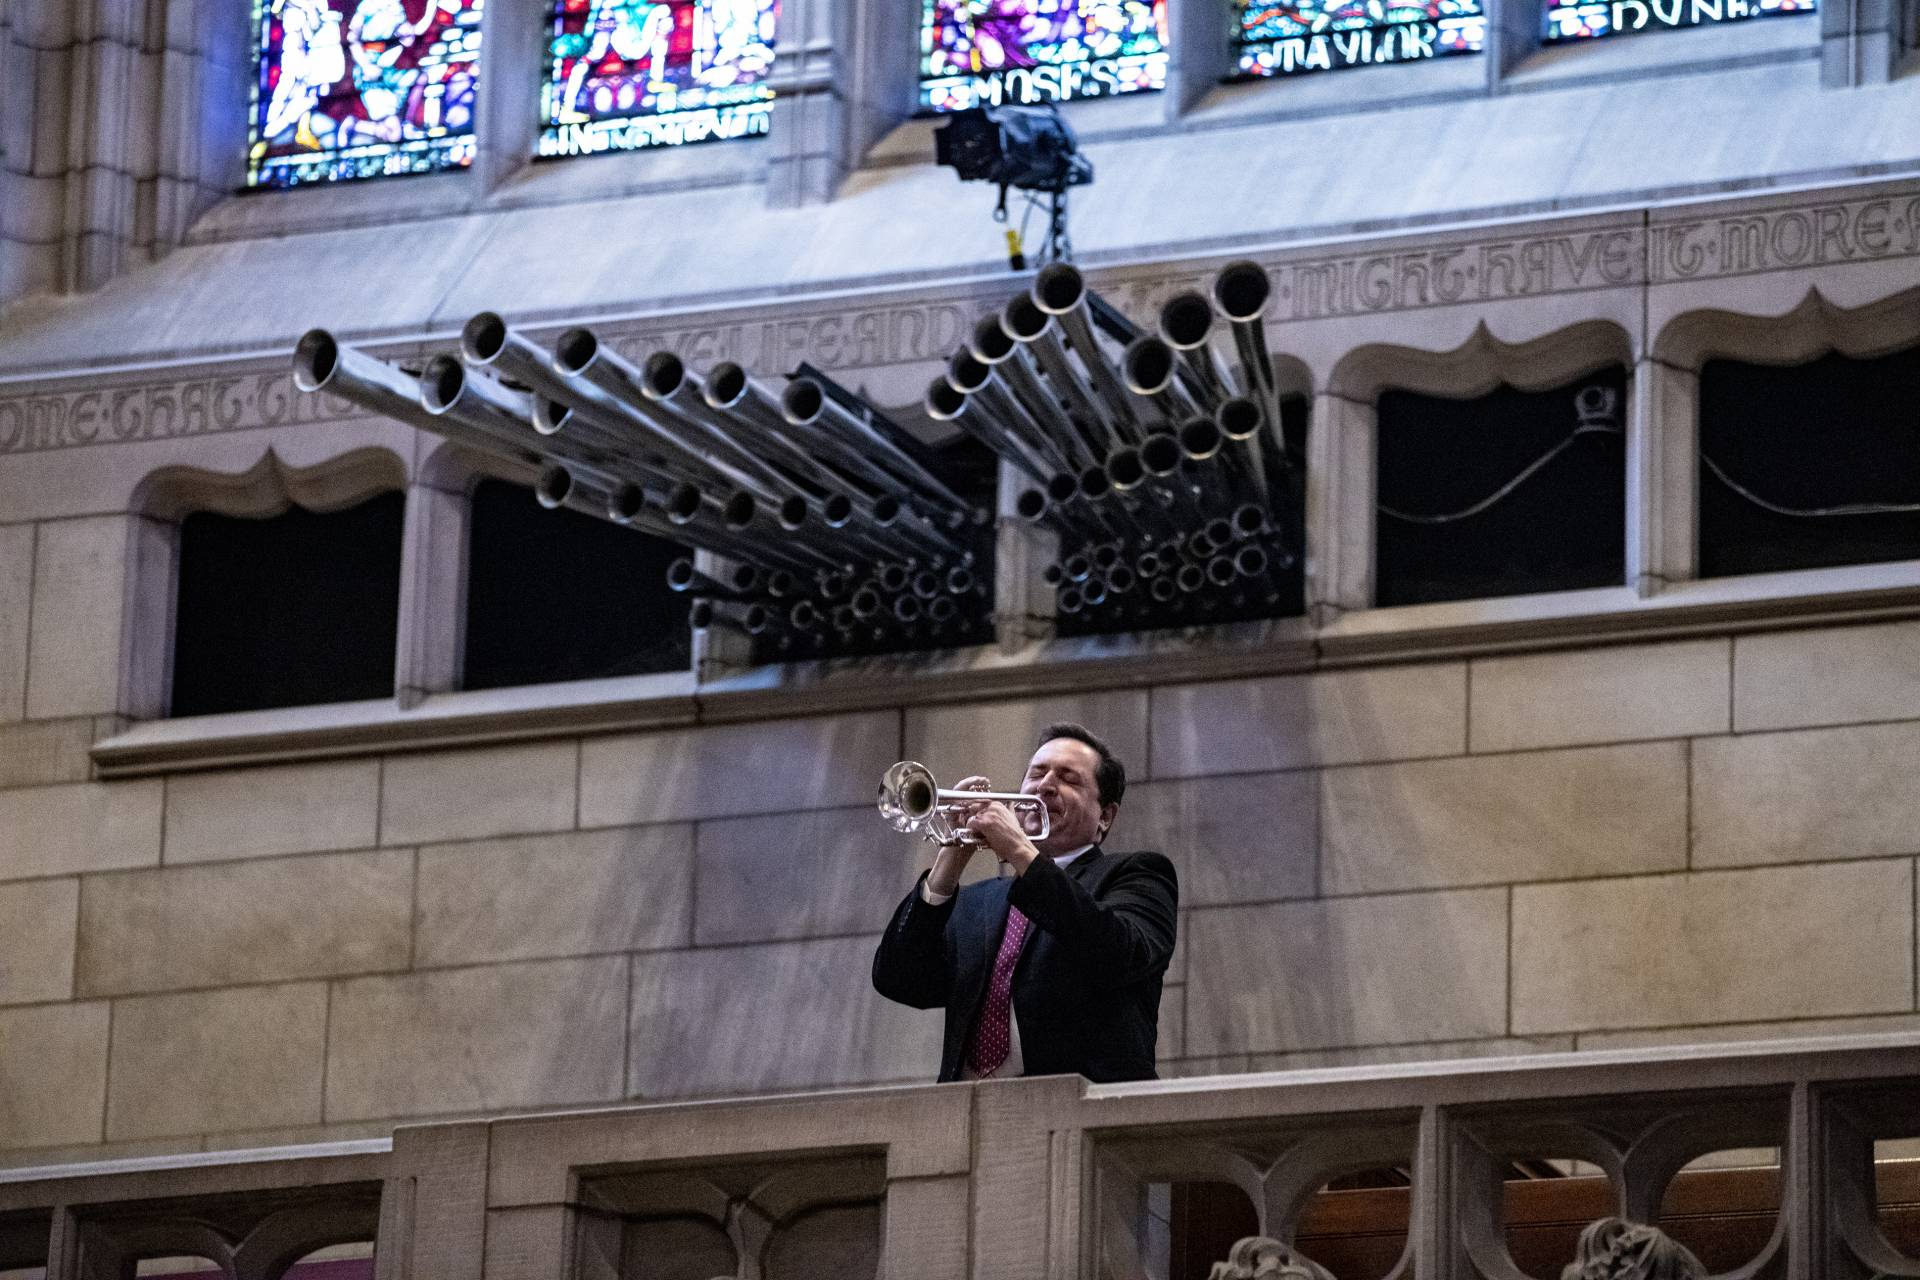 A man plays the trumpet underneath the pipes of the church organ